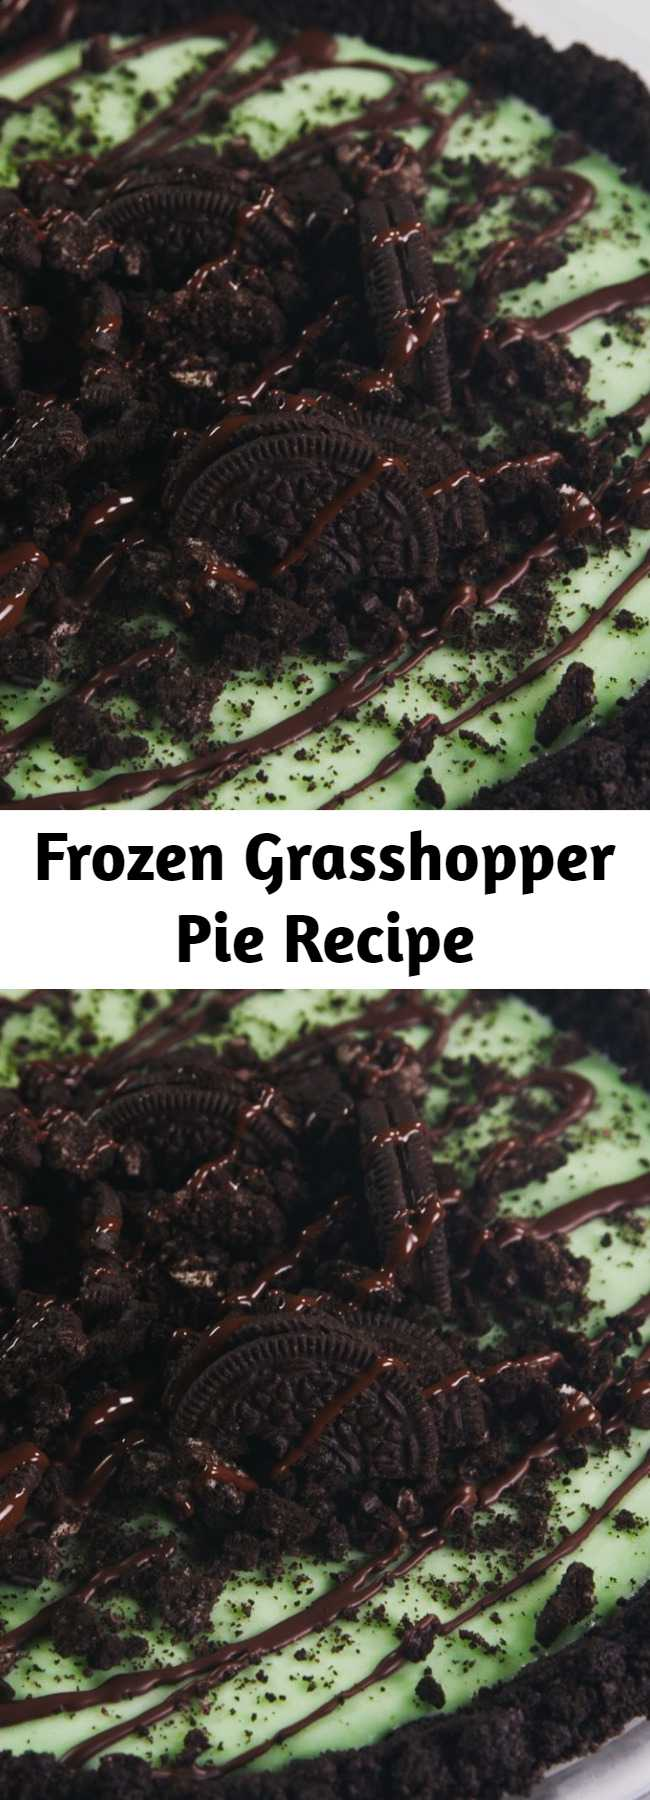 Frozen Grasshopper Pie Recipe - This Frozen Grasshopper Pie is the perfect refreshing dessert. Some crème de menthe is clear! If yours is, and you still want that lovely green hue, sneak in some green food coloring!